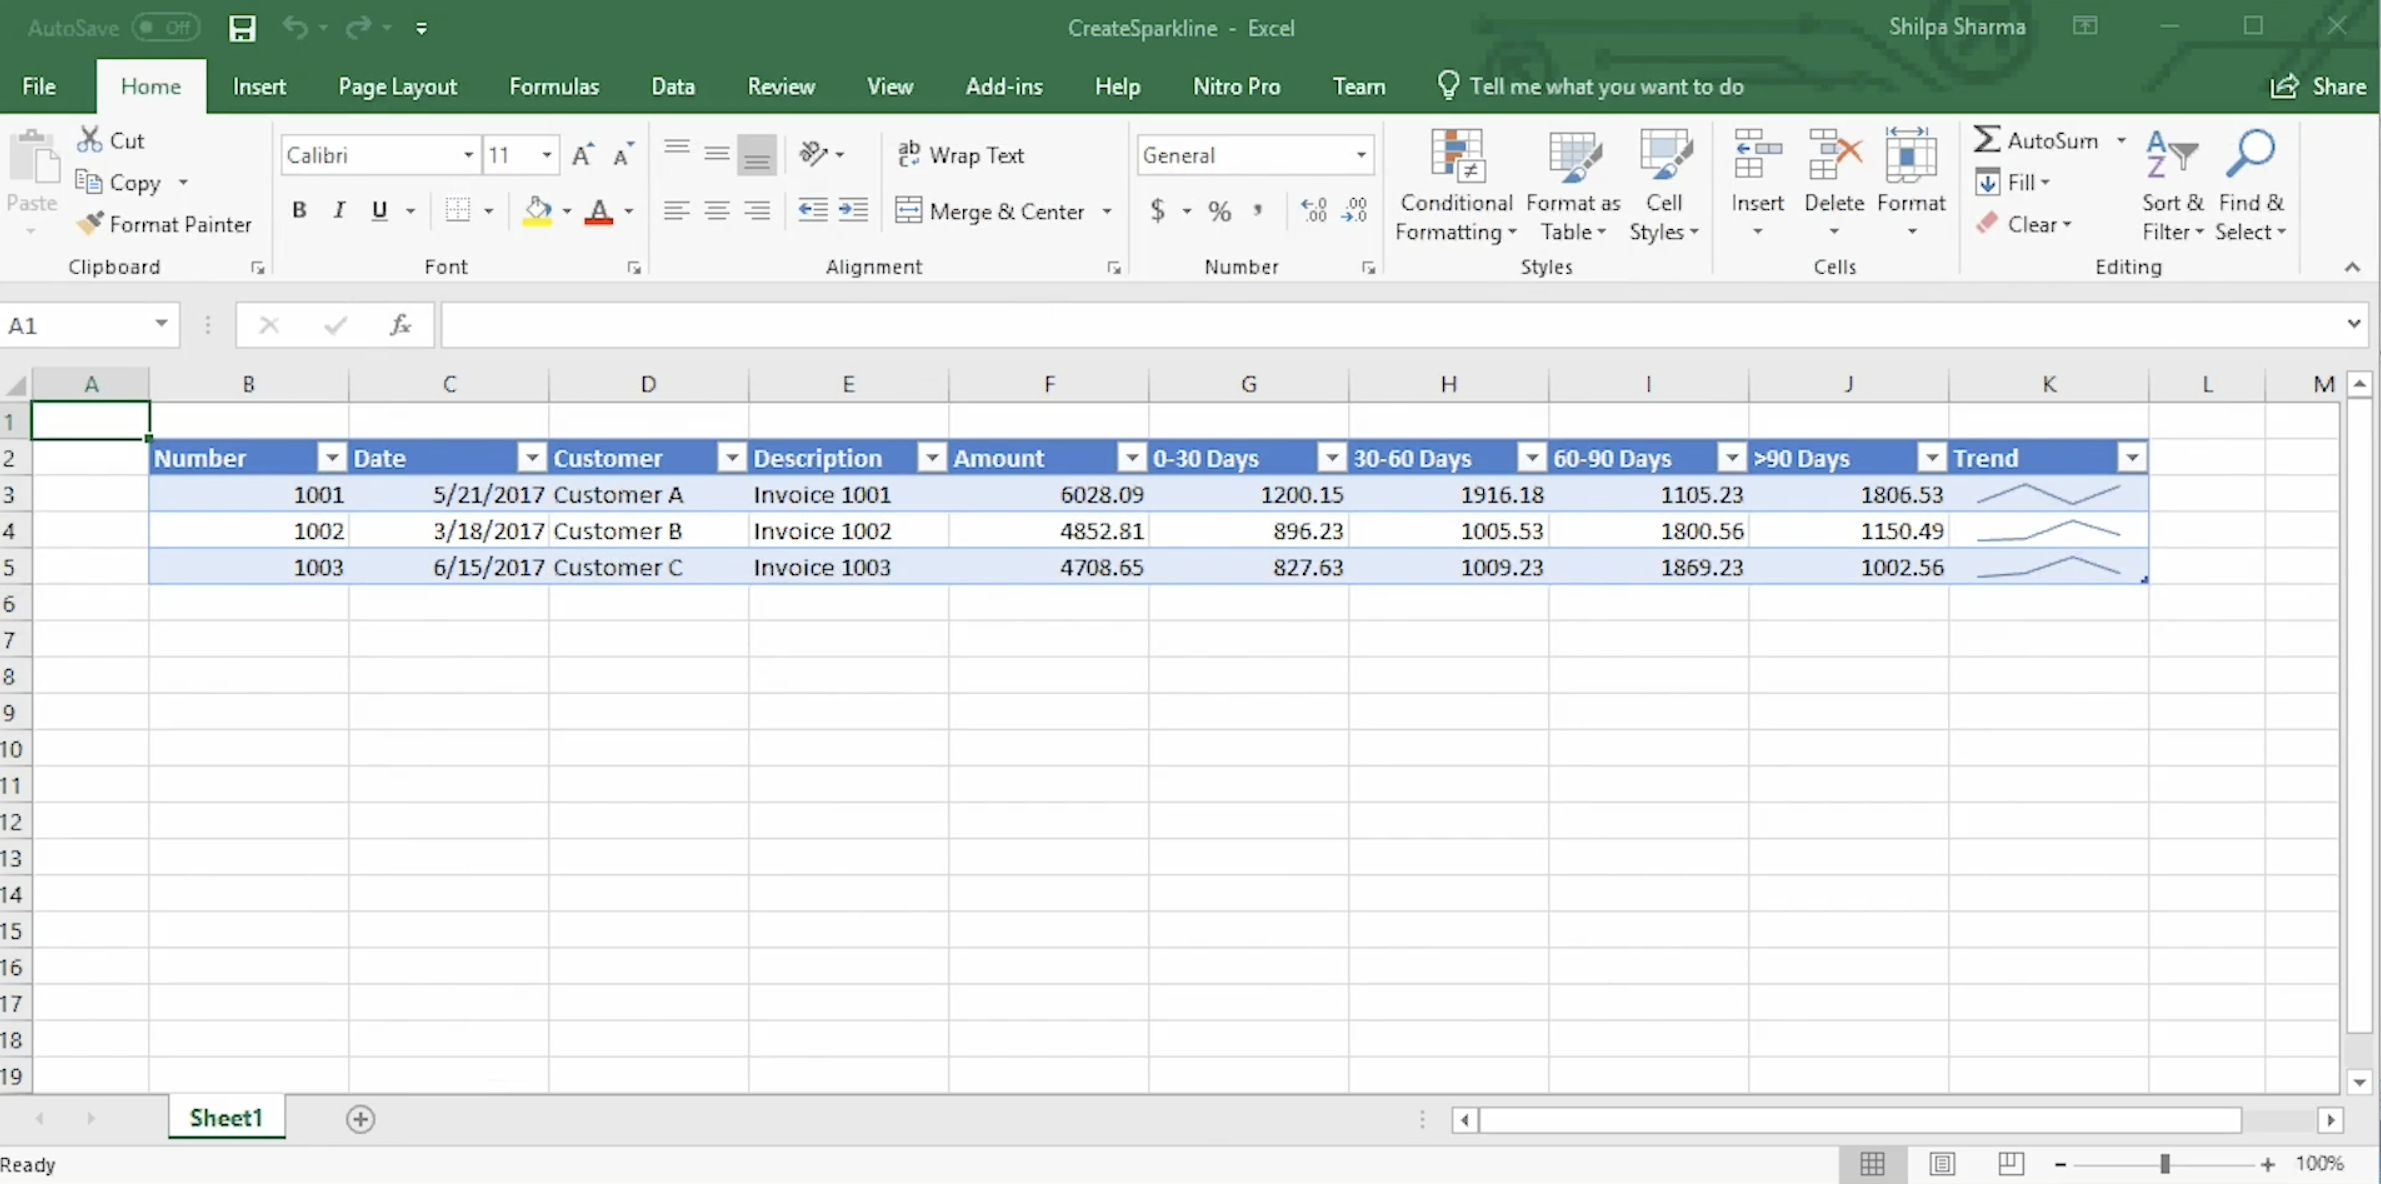 Documents for Excel, .NET Edition | How to Add Sparklines to a Spreadsheet